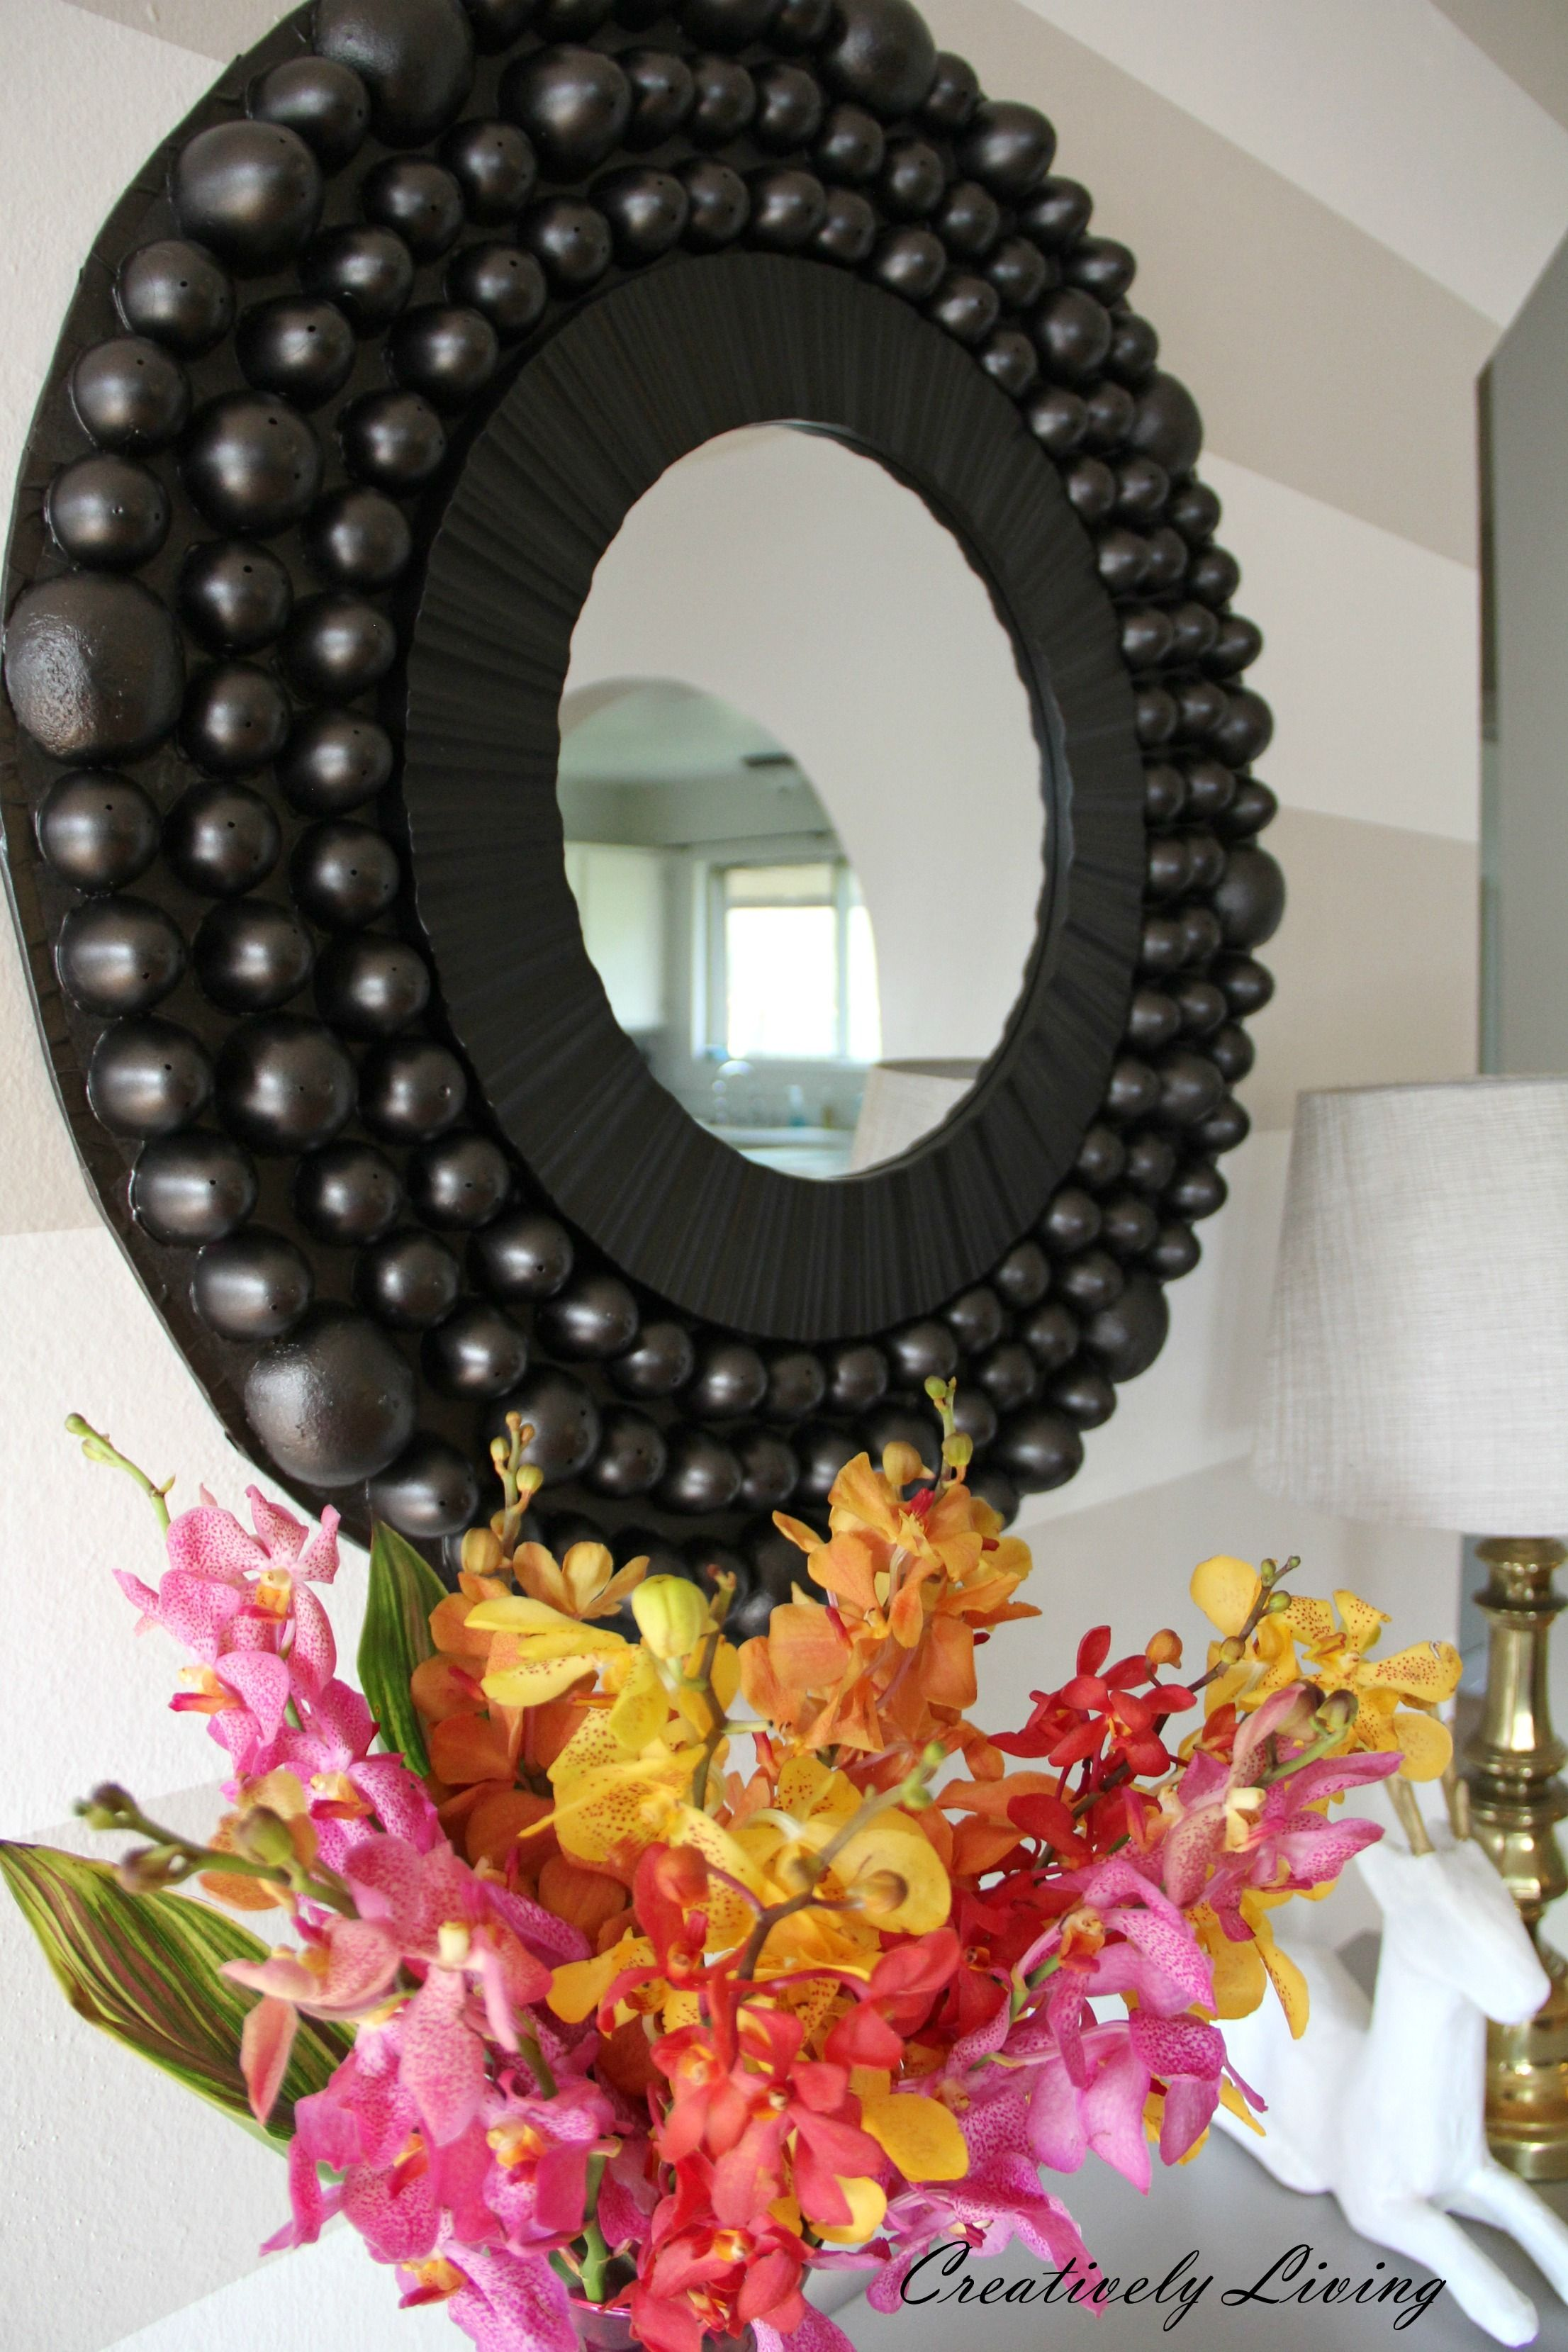 DIY Giant Awesome Bubble Mirror by